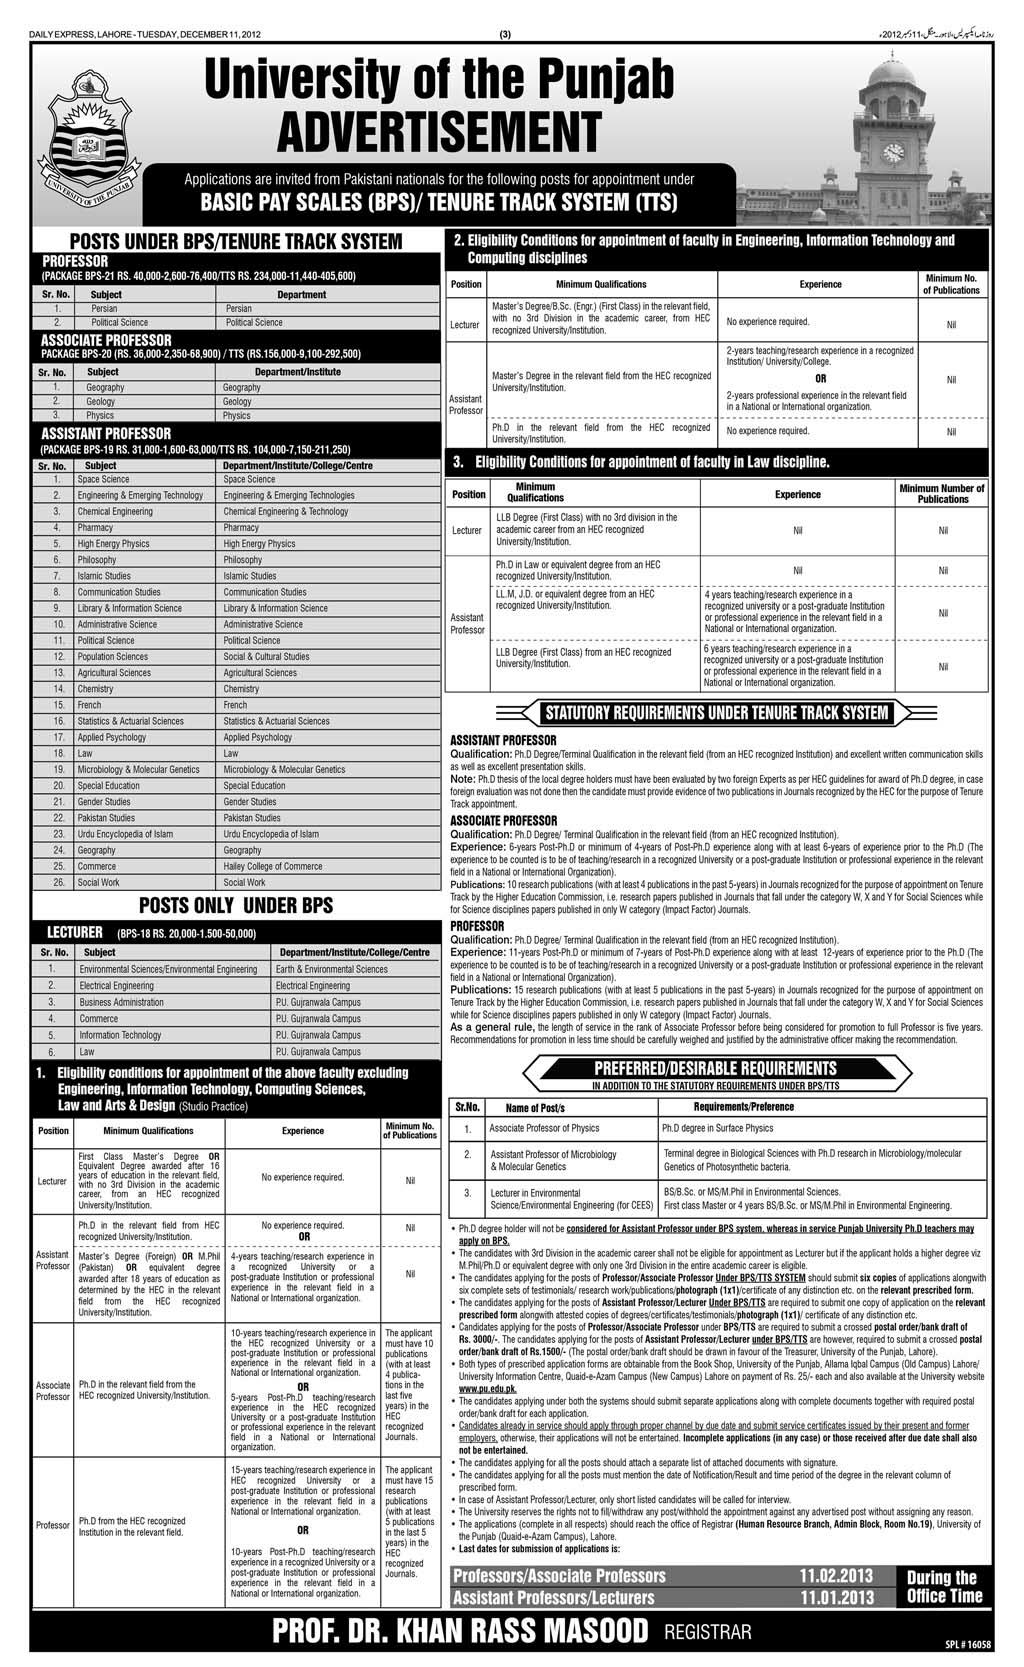 jobs Careers Opportunities in Punjab University